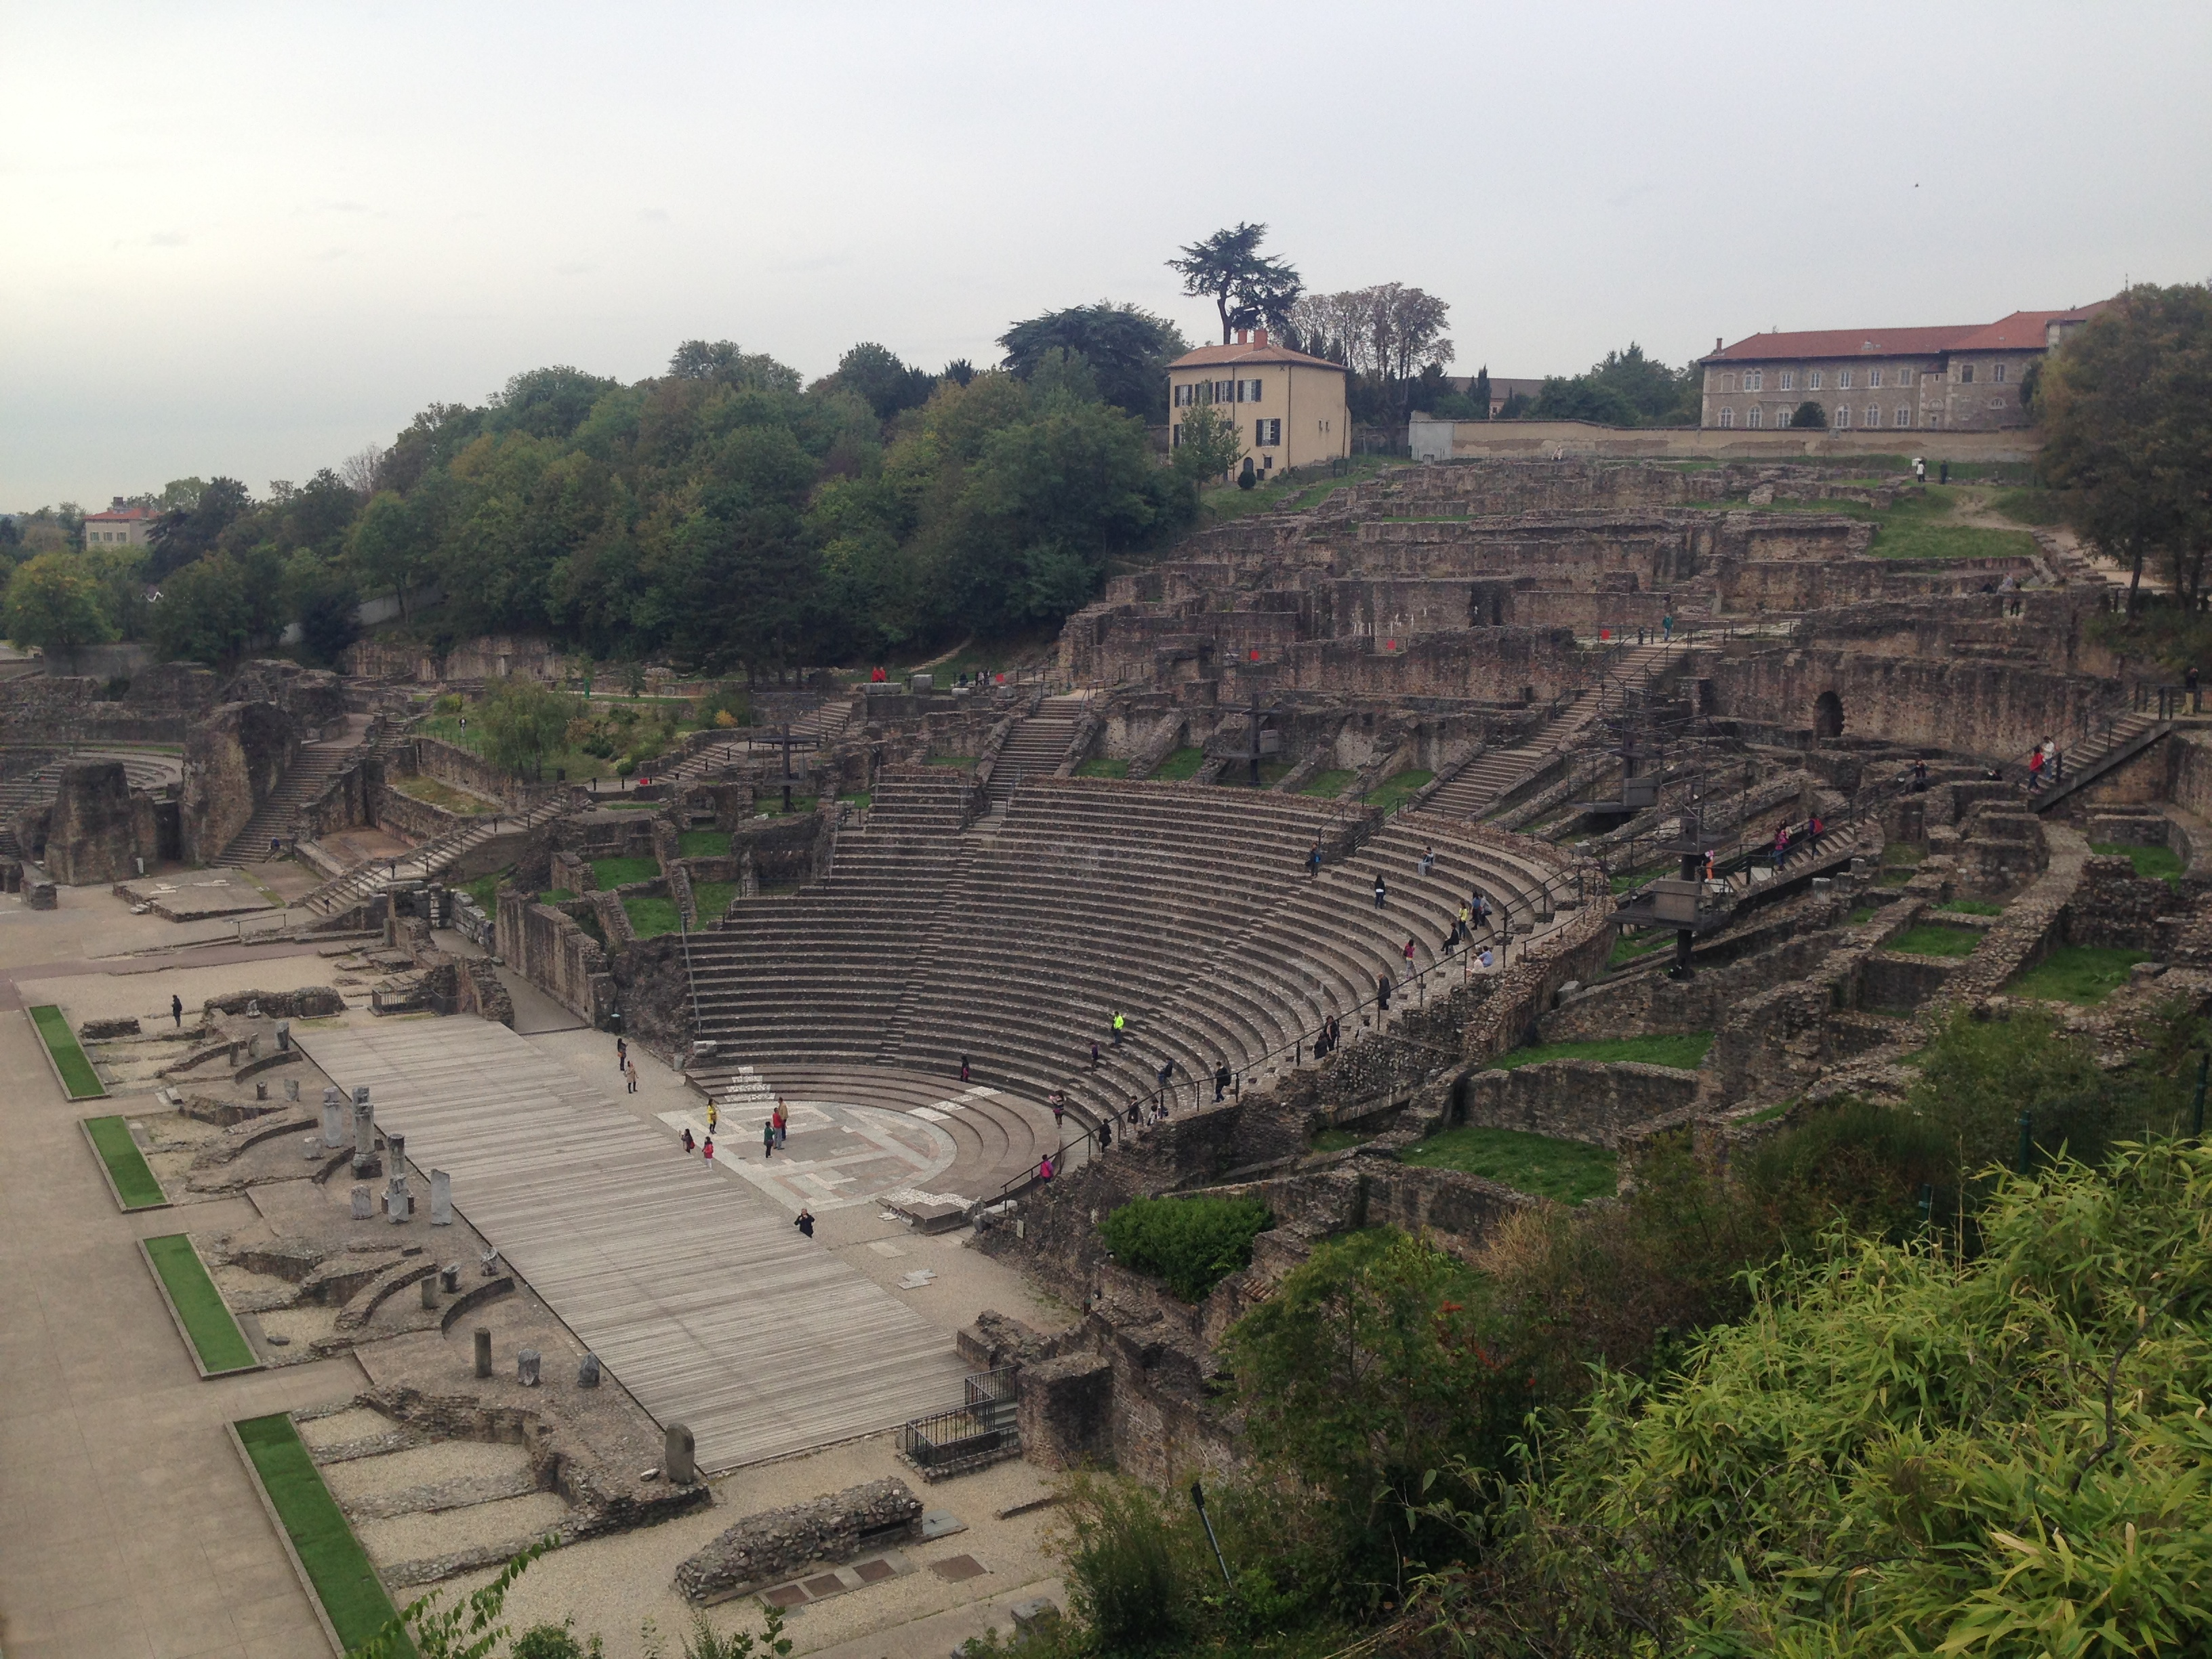 Theatres Romains, built around 15 BC by the Romans